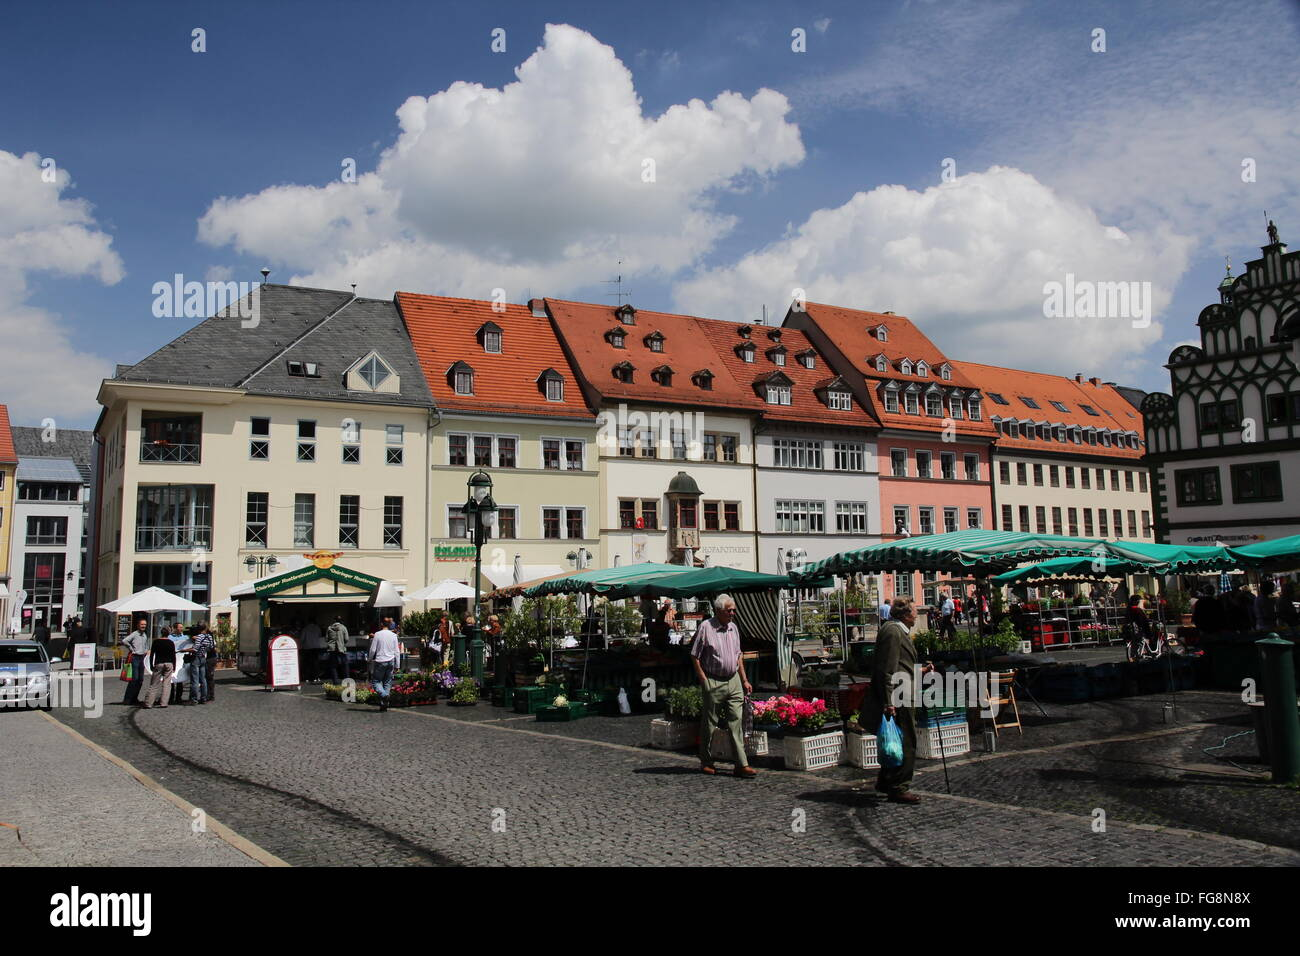 geography / travel, Germany, Thuringia, Weimar, marketplace, Additional-Rights-Clearance-Info-Not-Available - Stock Image